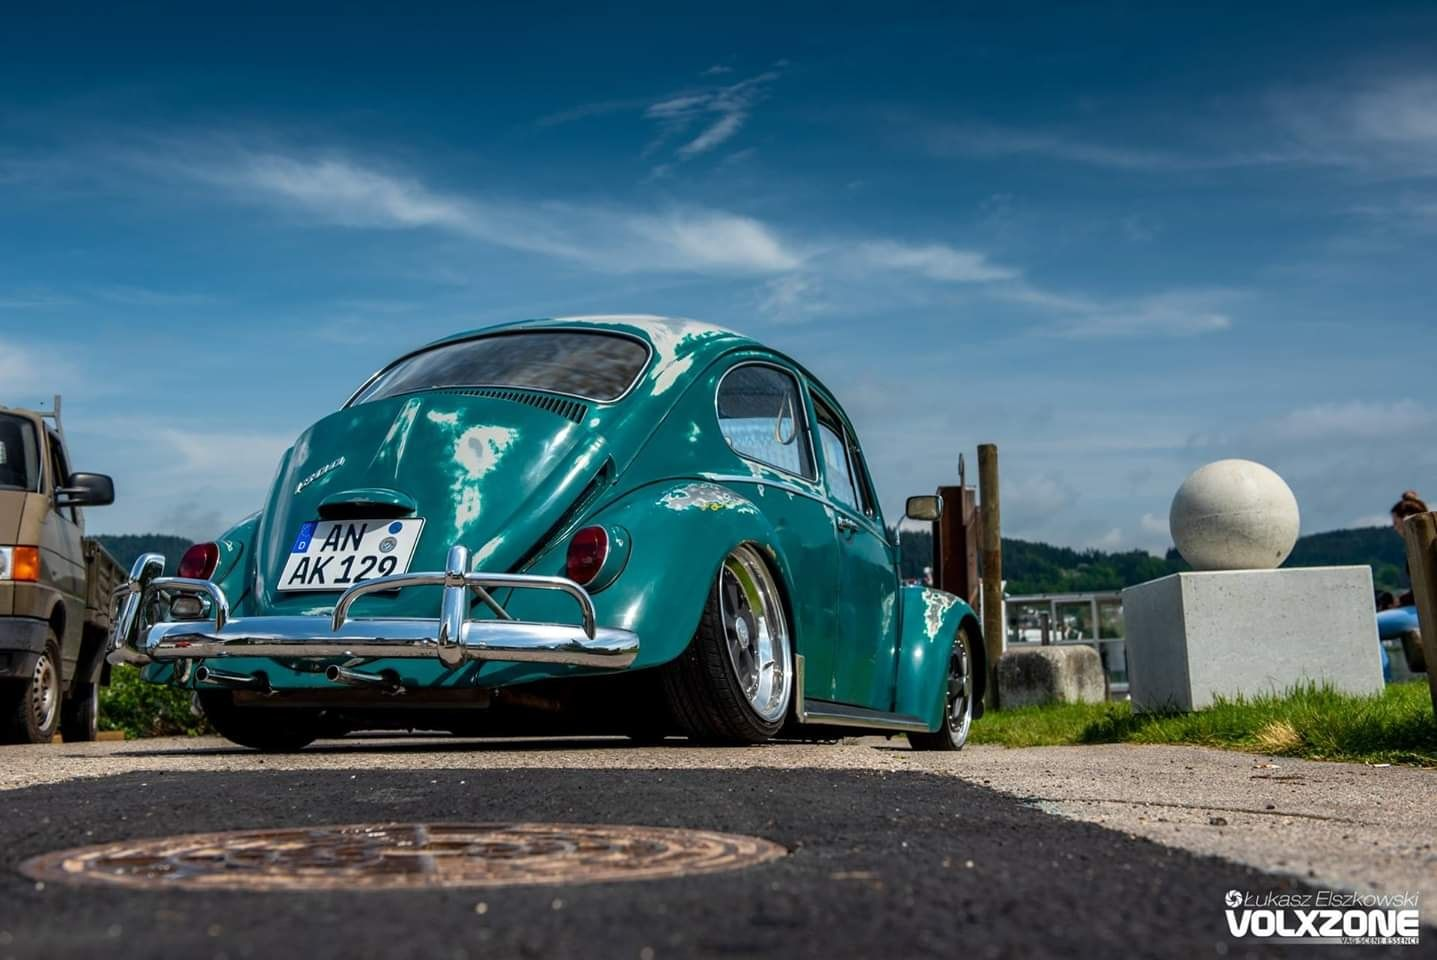 Pin By Everything Between Earth And On We Cars Vw Beetles Super Cars Vw Bug